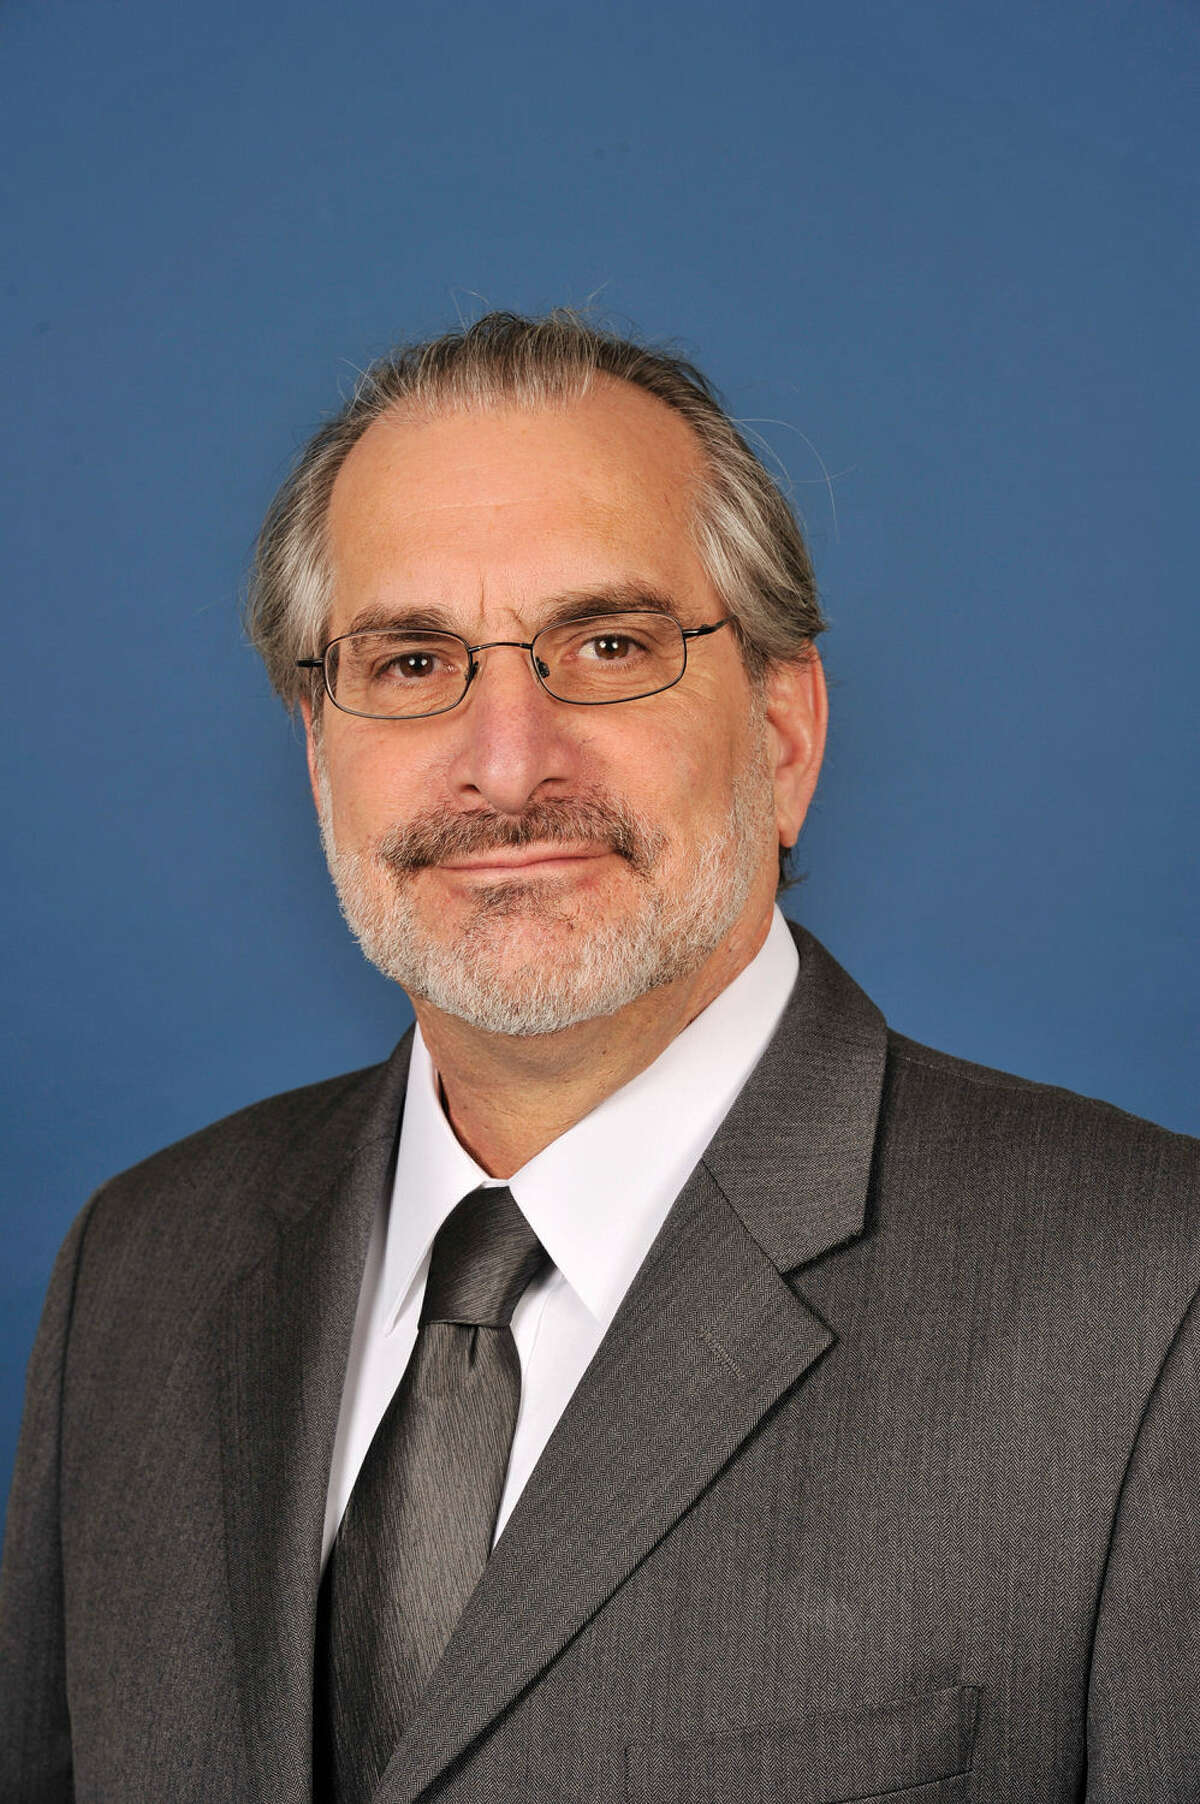 Fredric Rolando is president of the National Association of Letter Carriers, Washington D.C.